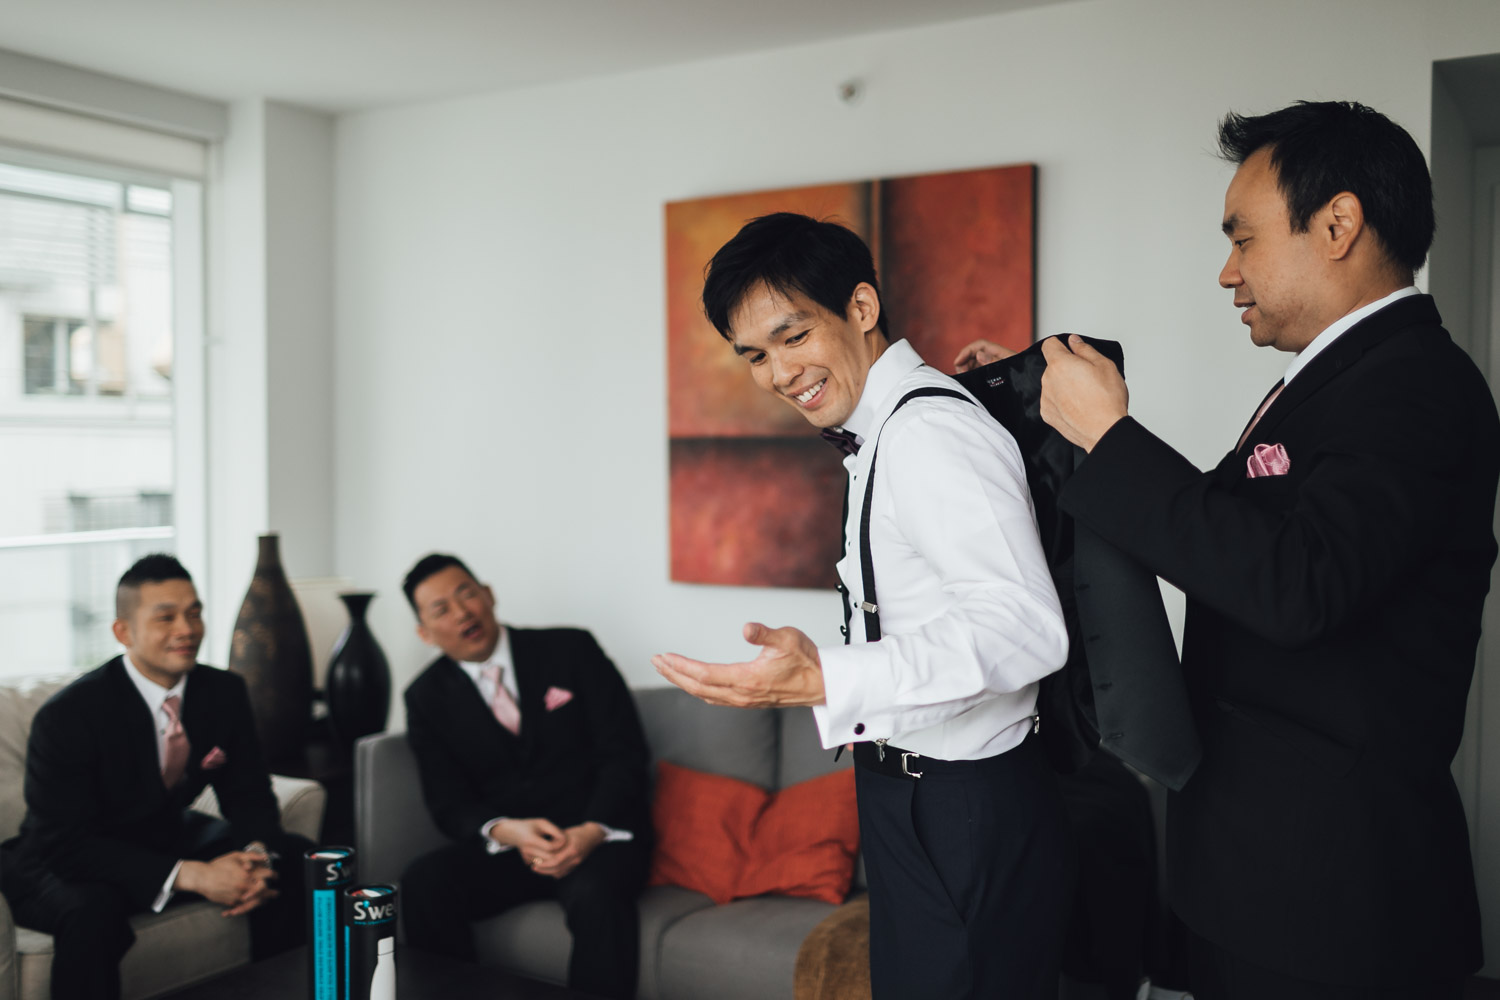 vancouver wedding photography yaletown groom getting ready